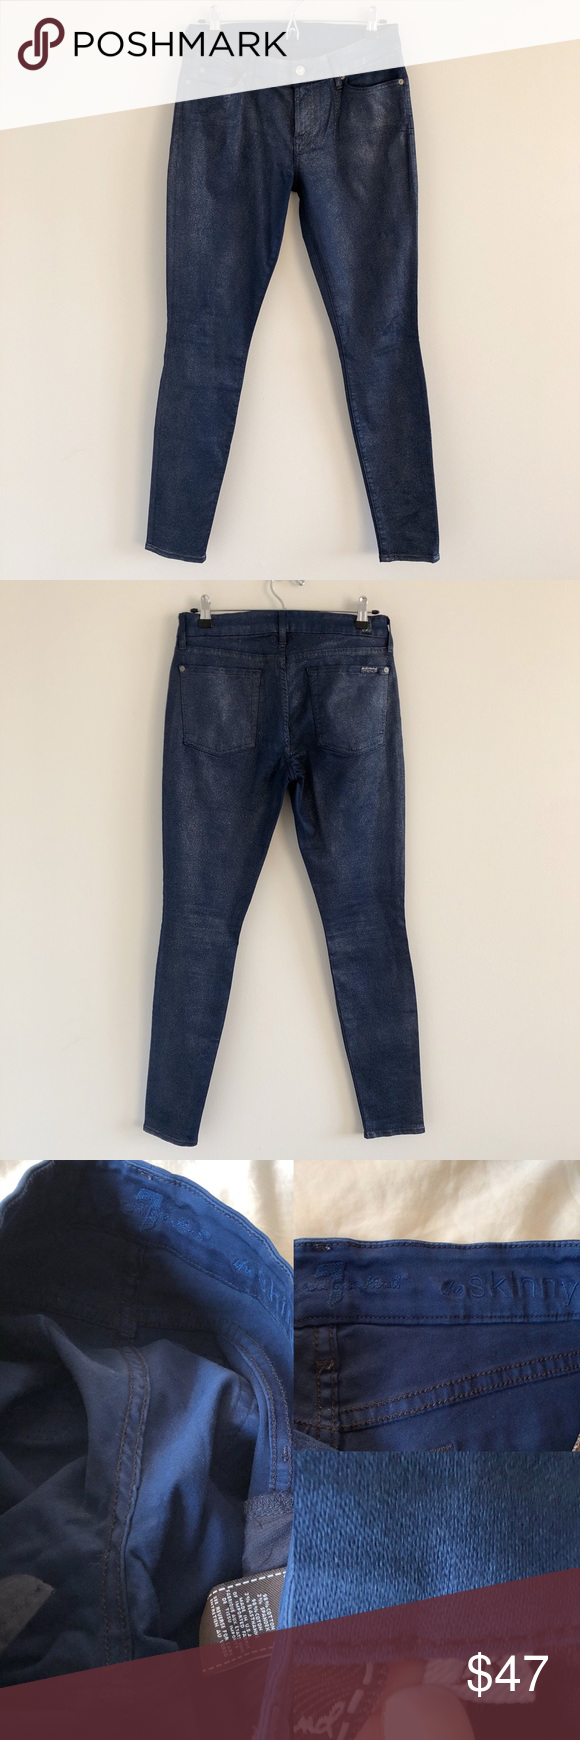 c1e40141 7 For All Mankind The Skinny Shimmer Jeans 28 Dark blue soft, stretchy  skinny jeans with silver glitter throughout. Stats (laying flat): Inseam  (crotch to ...